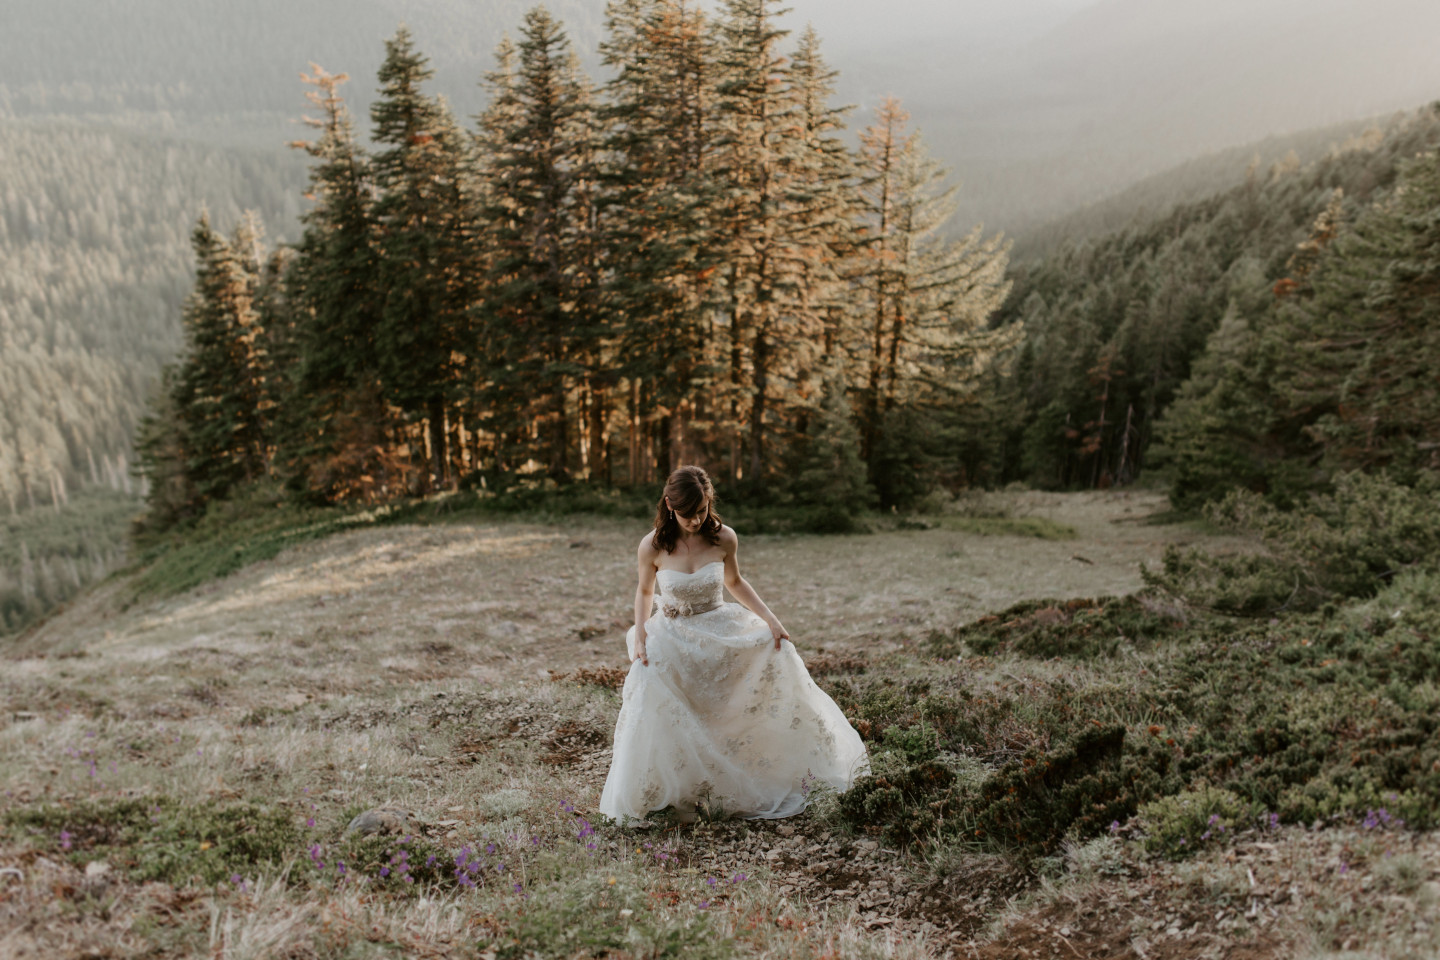 Moira walks up a slope on the trail near Mount Hood. Adventure elopement wedding shoot by Sienna Plus Josh.